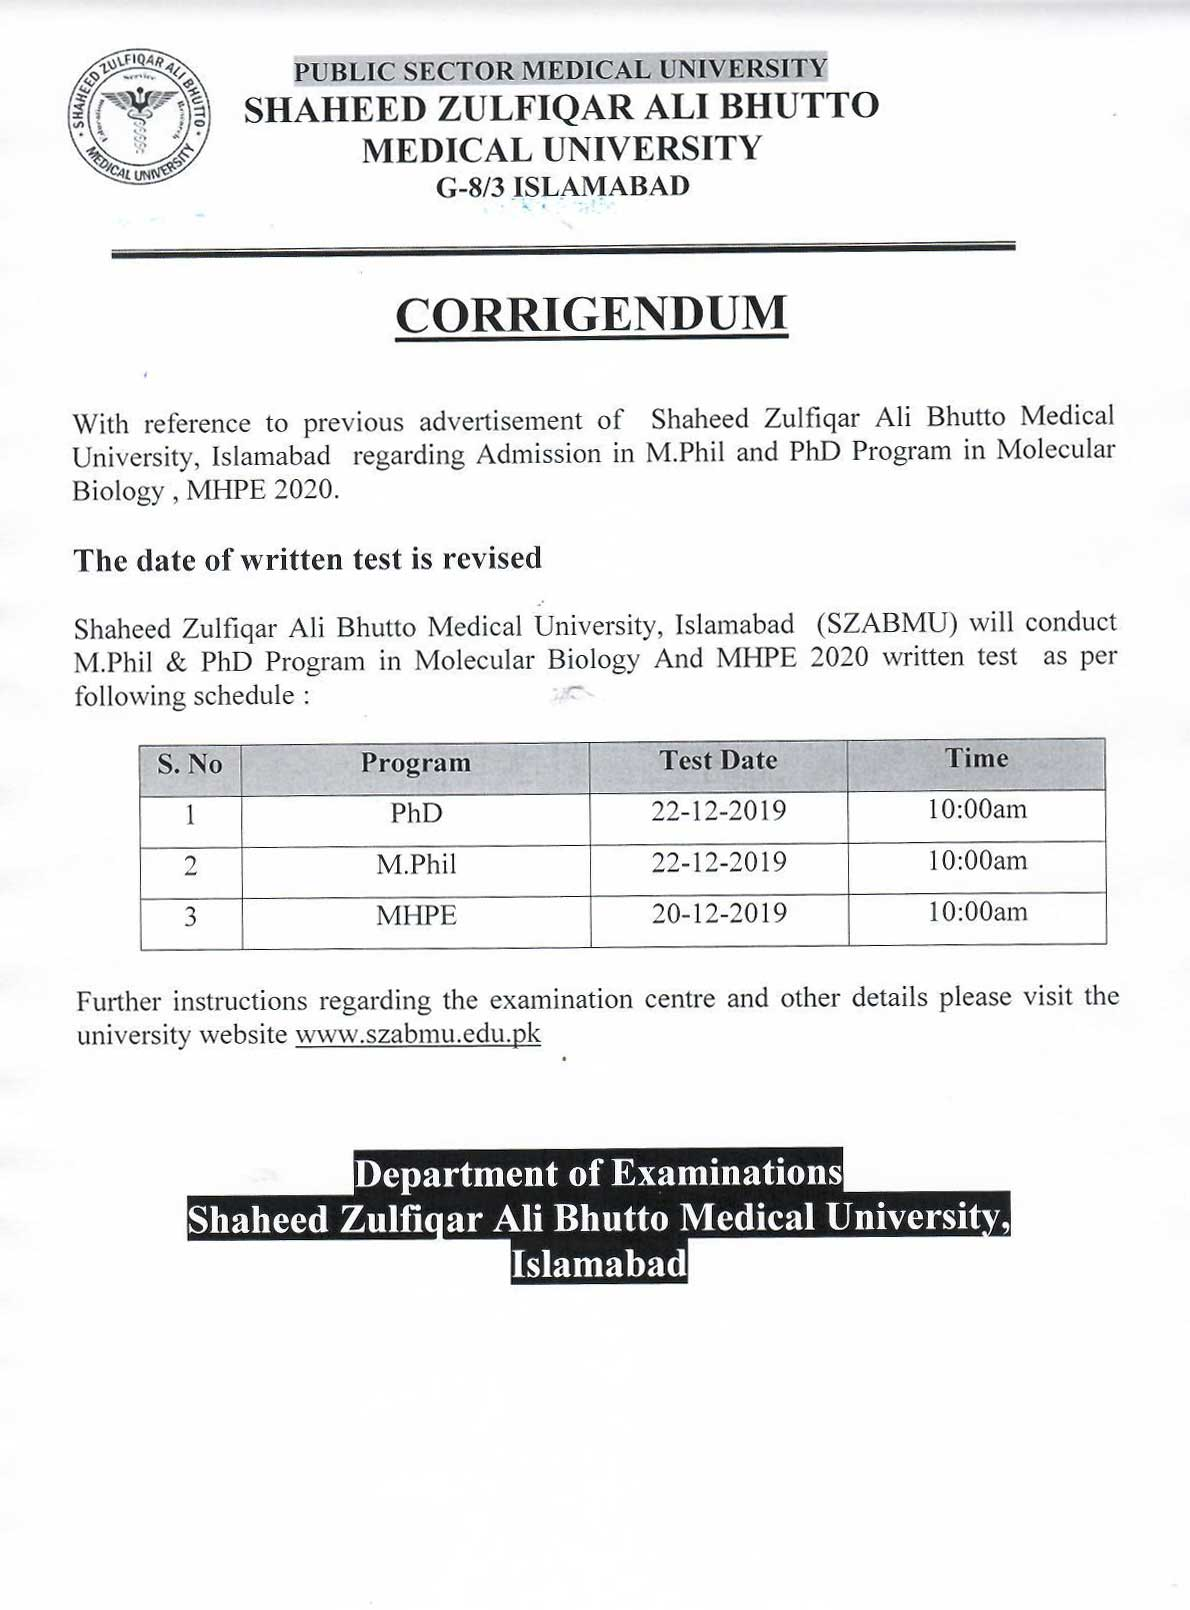 Corrigendum of admission test of M.Phil & PhD in Molecular Biology and MHPE 2020